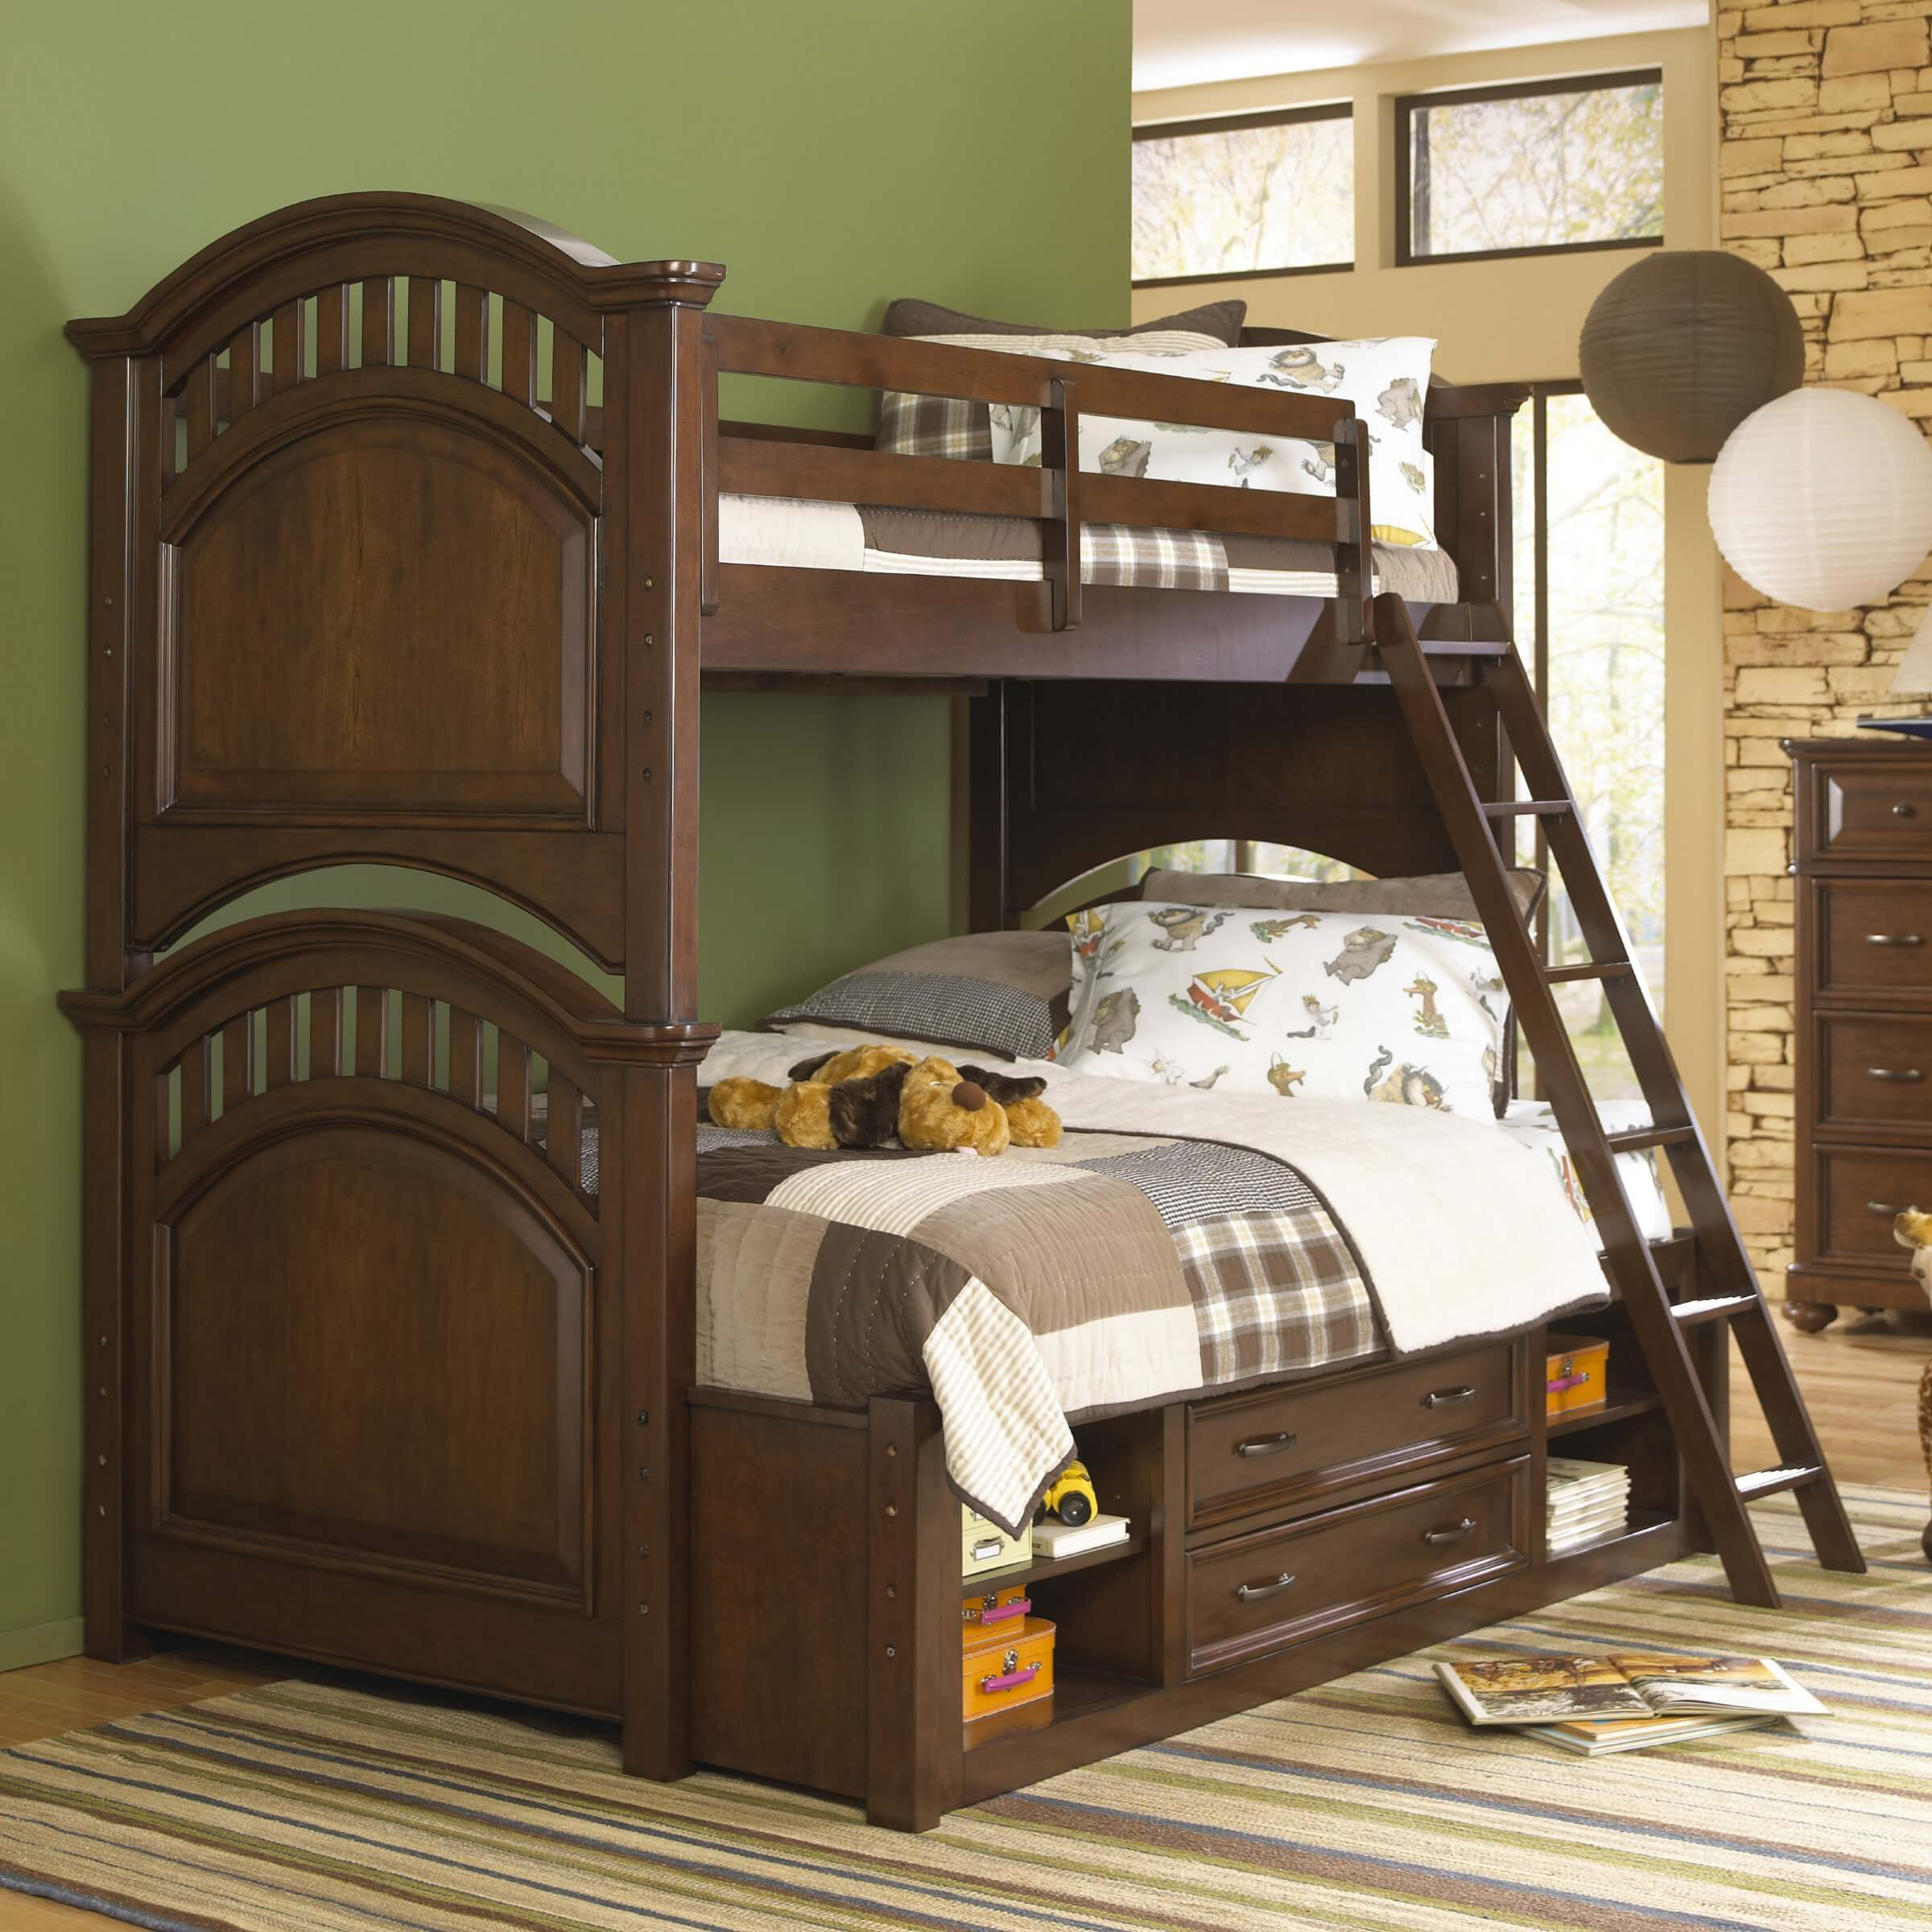 Top 10 types of twin over full bunk beds buying guide for Wooden bunk bed designs